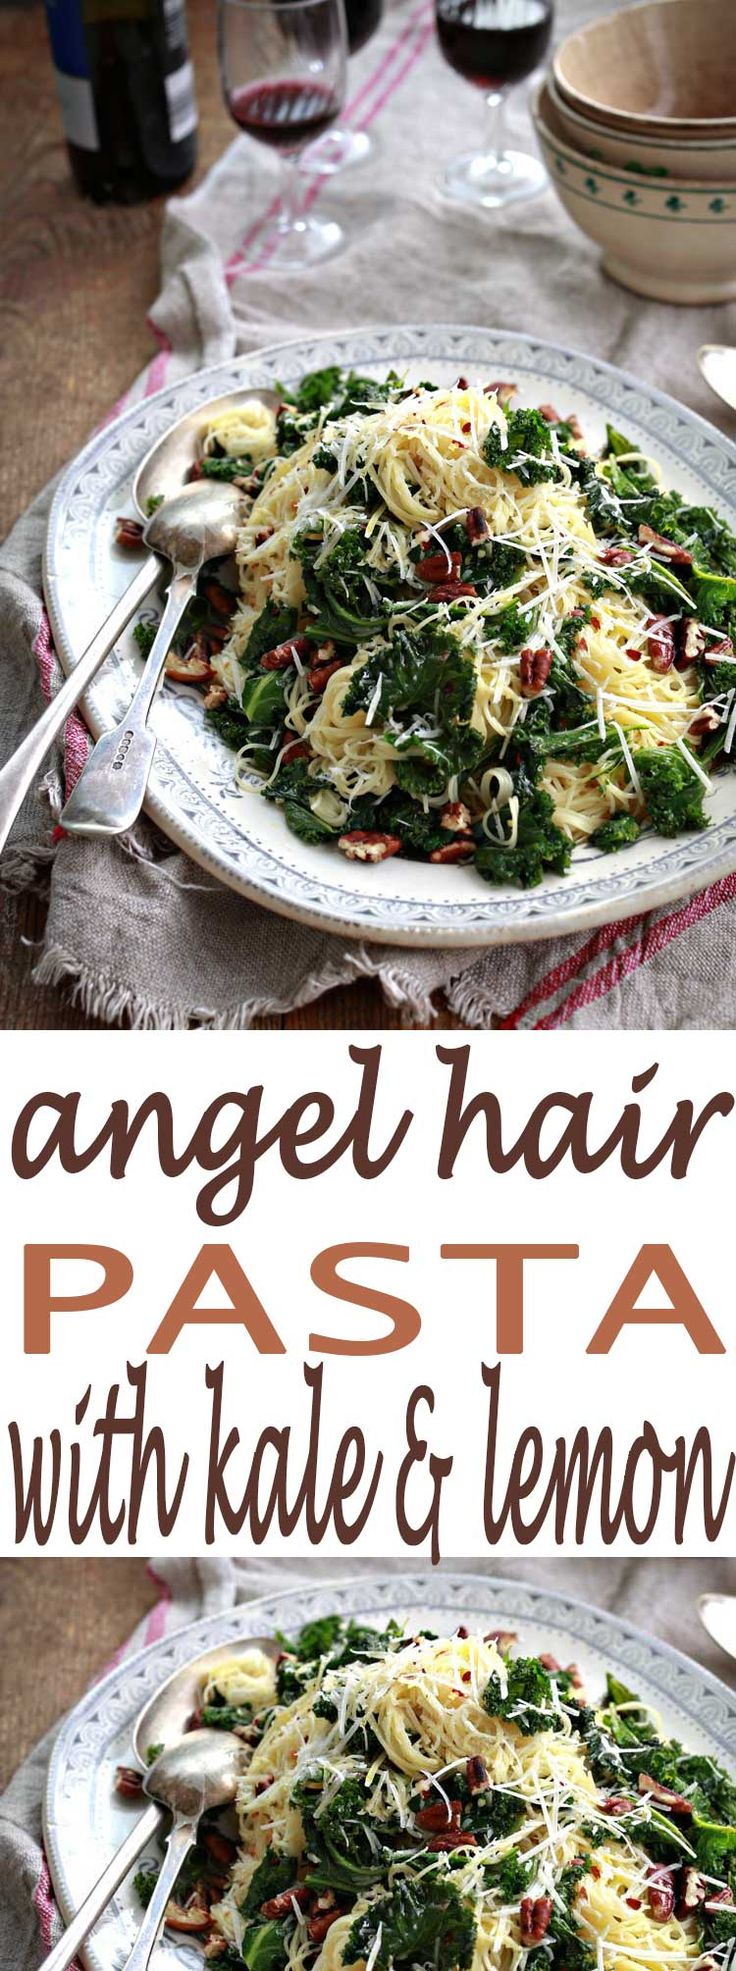 You've got to try this Angel Hair Pasta with Kale and Lemon - it's so delicious. If you're looking for more recipes with kale to try, this is a great one!